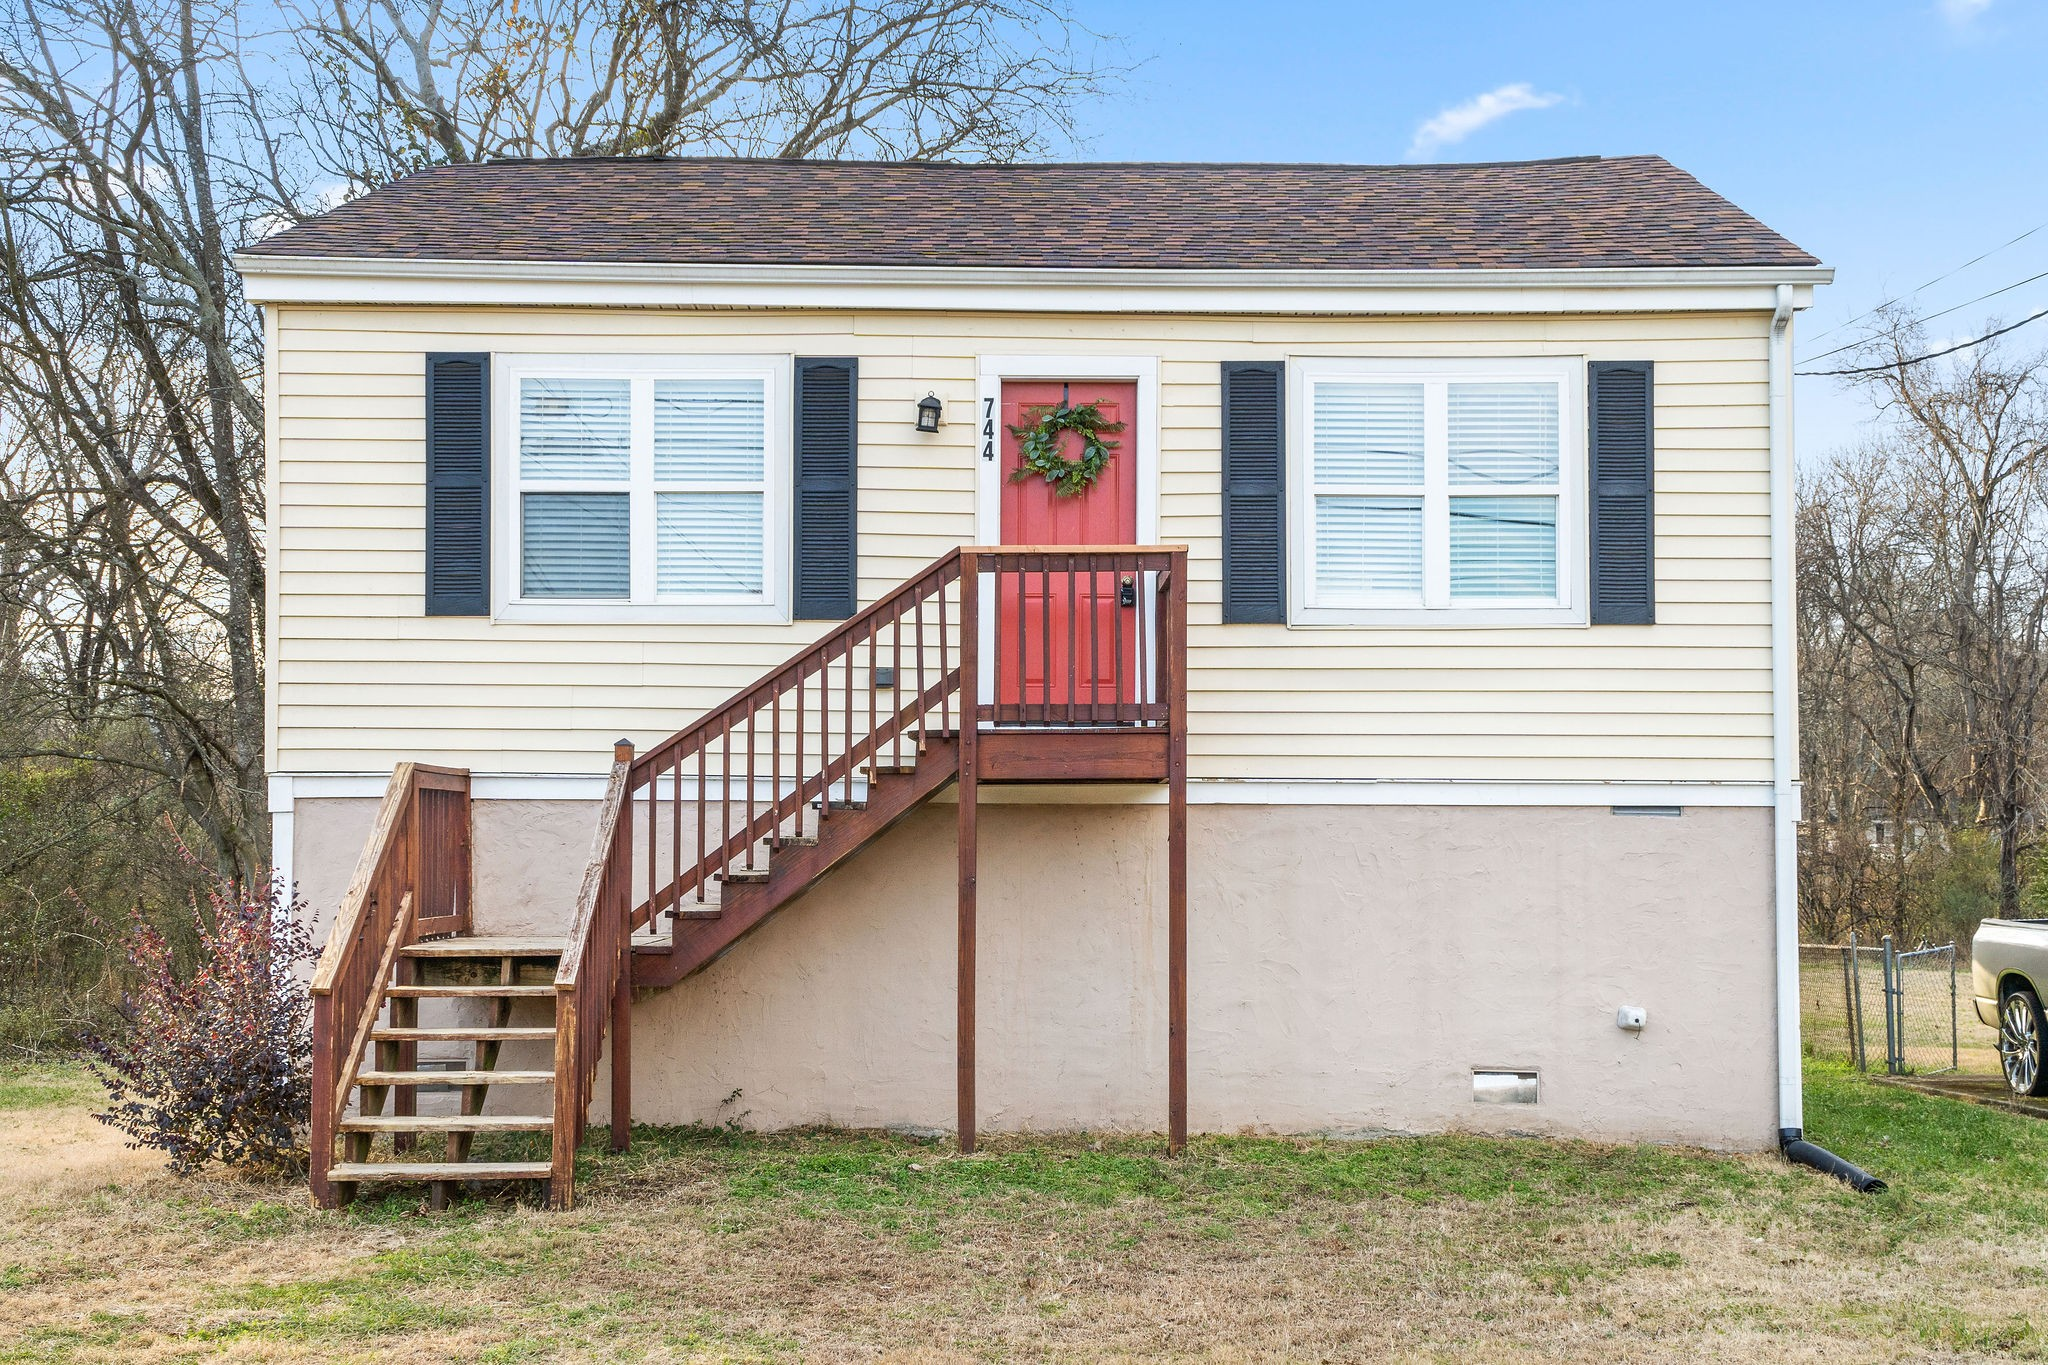 Check Out This Picture Perfect, Move In Ready, Ranch Home - Conveniently Located Near Shopping & Briley Parkway - NEW Paint - NEW Flooring - NO Carpet in Home - All Kitchen Appliances Convey - MUST SEE!